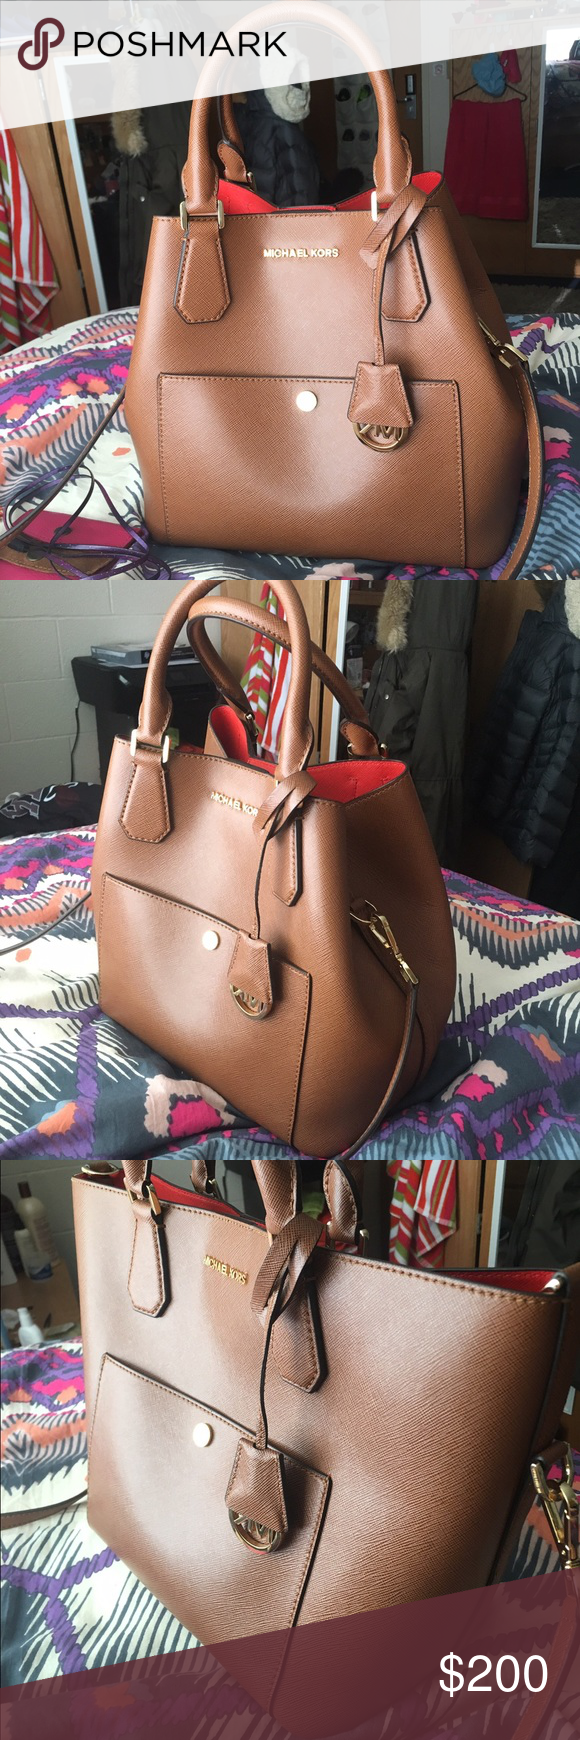 Michael Kors Medium Tote Michael Kors Saffiano Leather Medium Tote Bag. The inside is bright orange and the outside is brown. Is from the Summer 2016 collection. Michael Kors Bags Totes